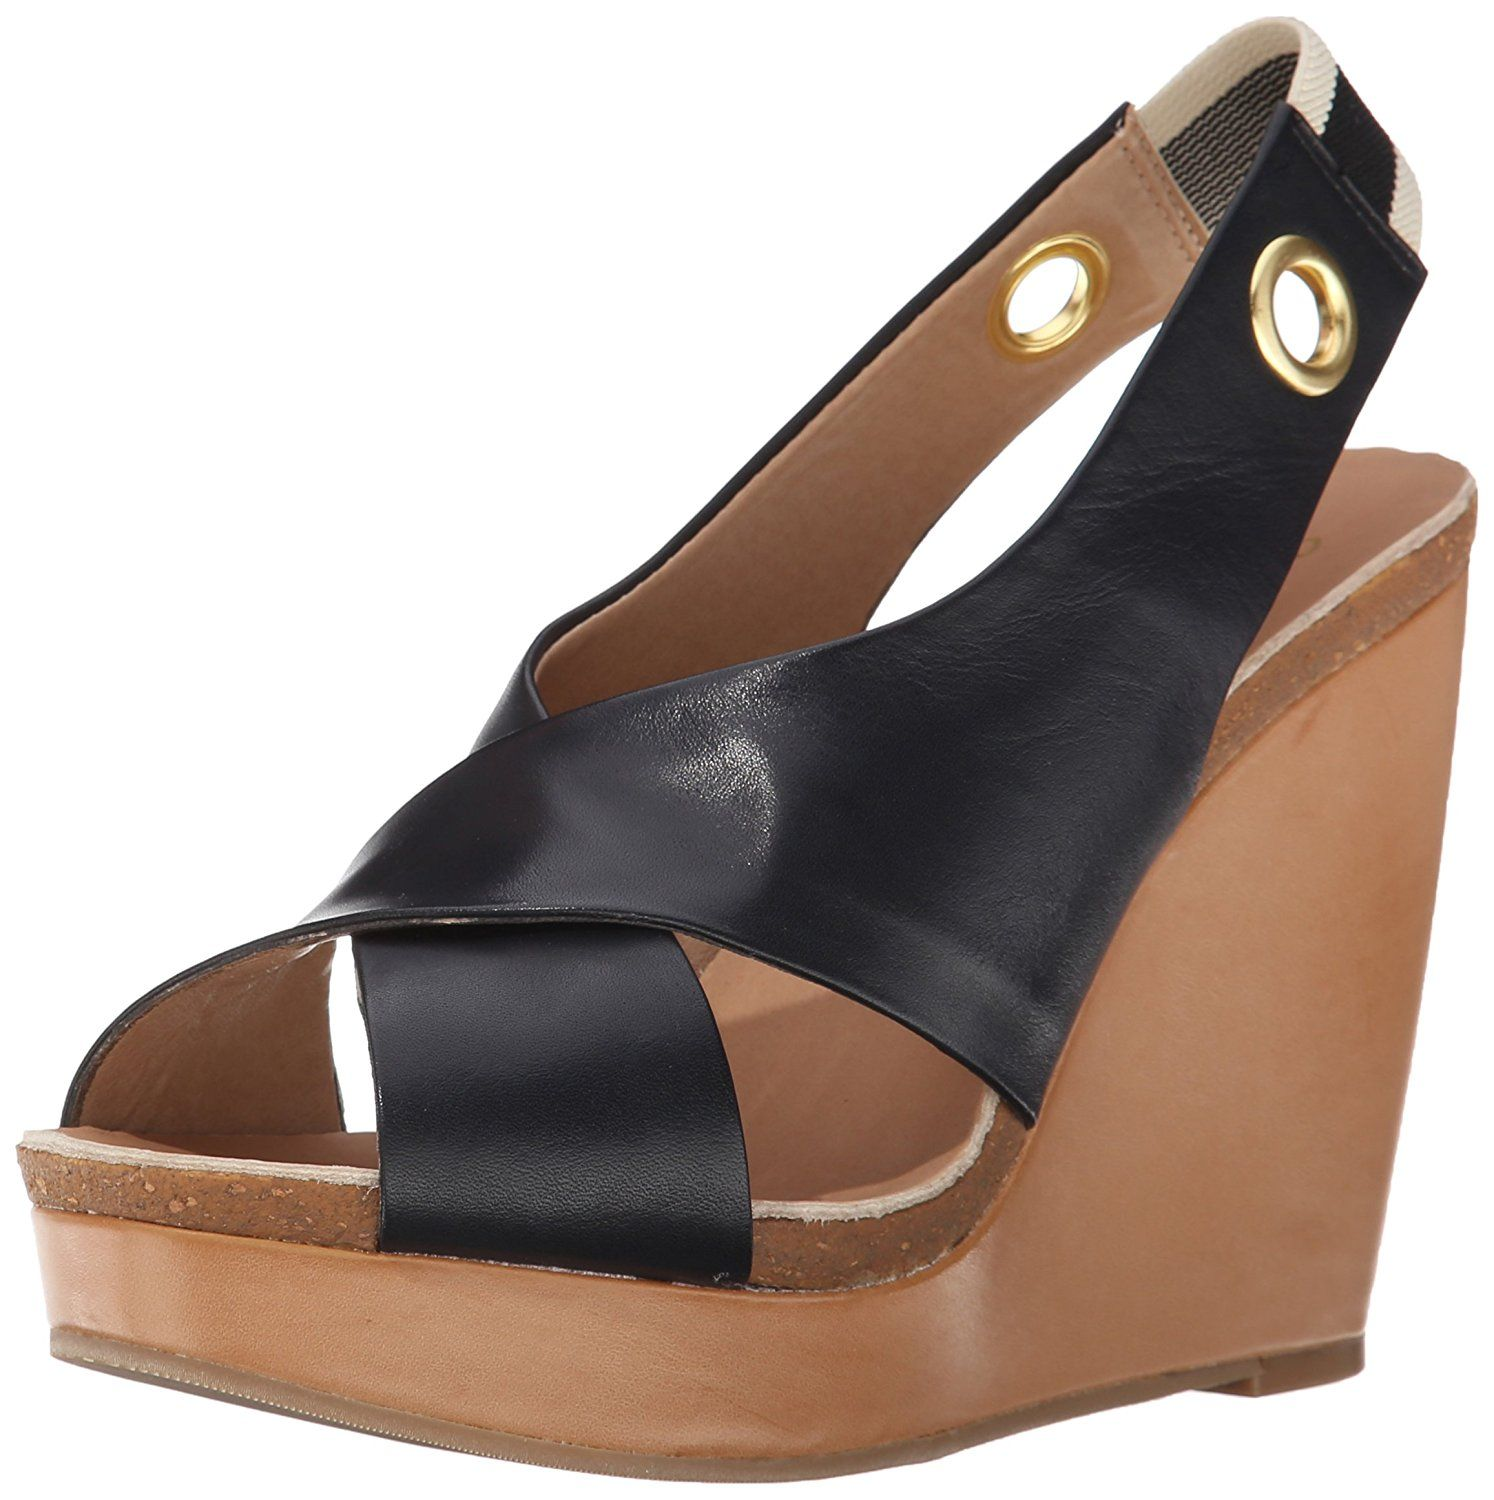 Splendid Women's Dinah Wedge Sandal *** Click image to review more details.    Shoes   Pinterest   Leather sandals, Wedge sandals and Sandals